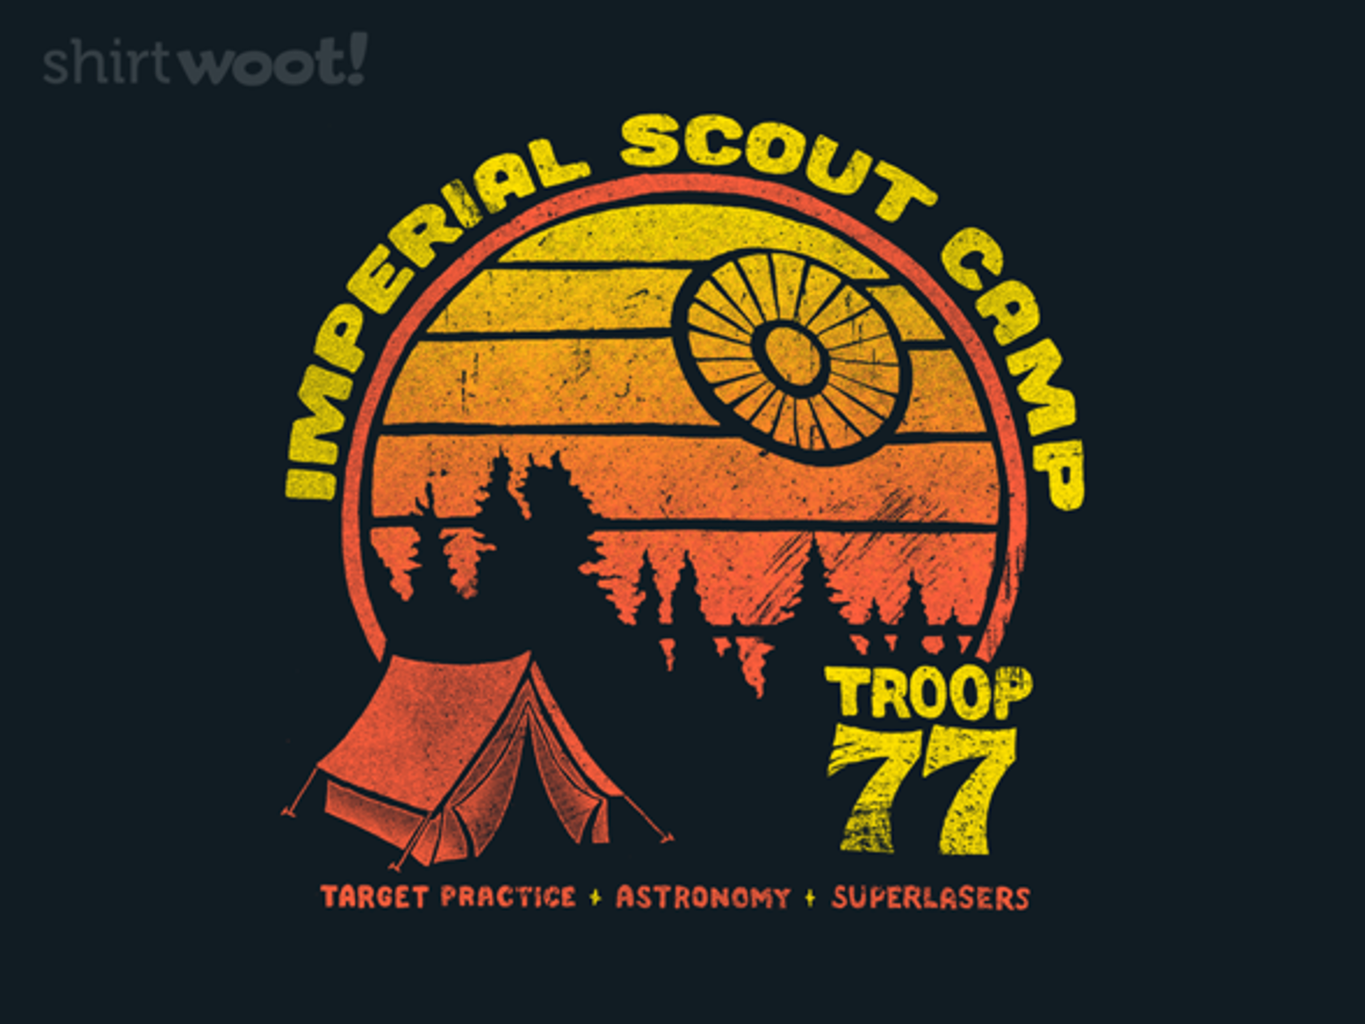 Woot!: Imperial Scout Camp - $15.00 + Free shipping